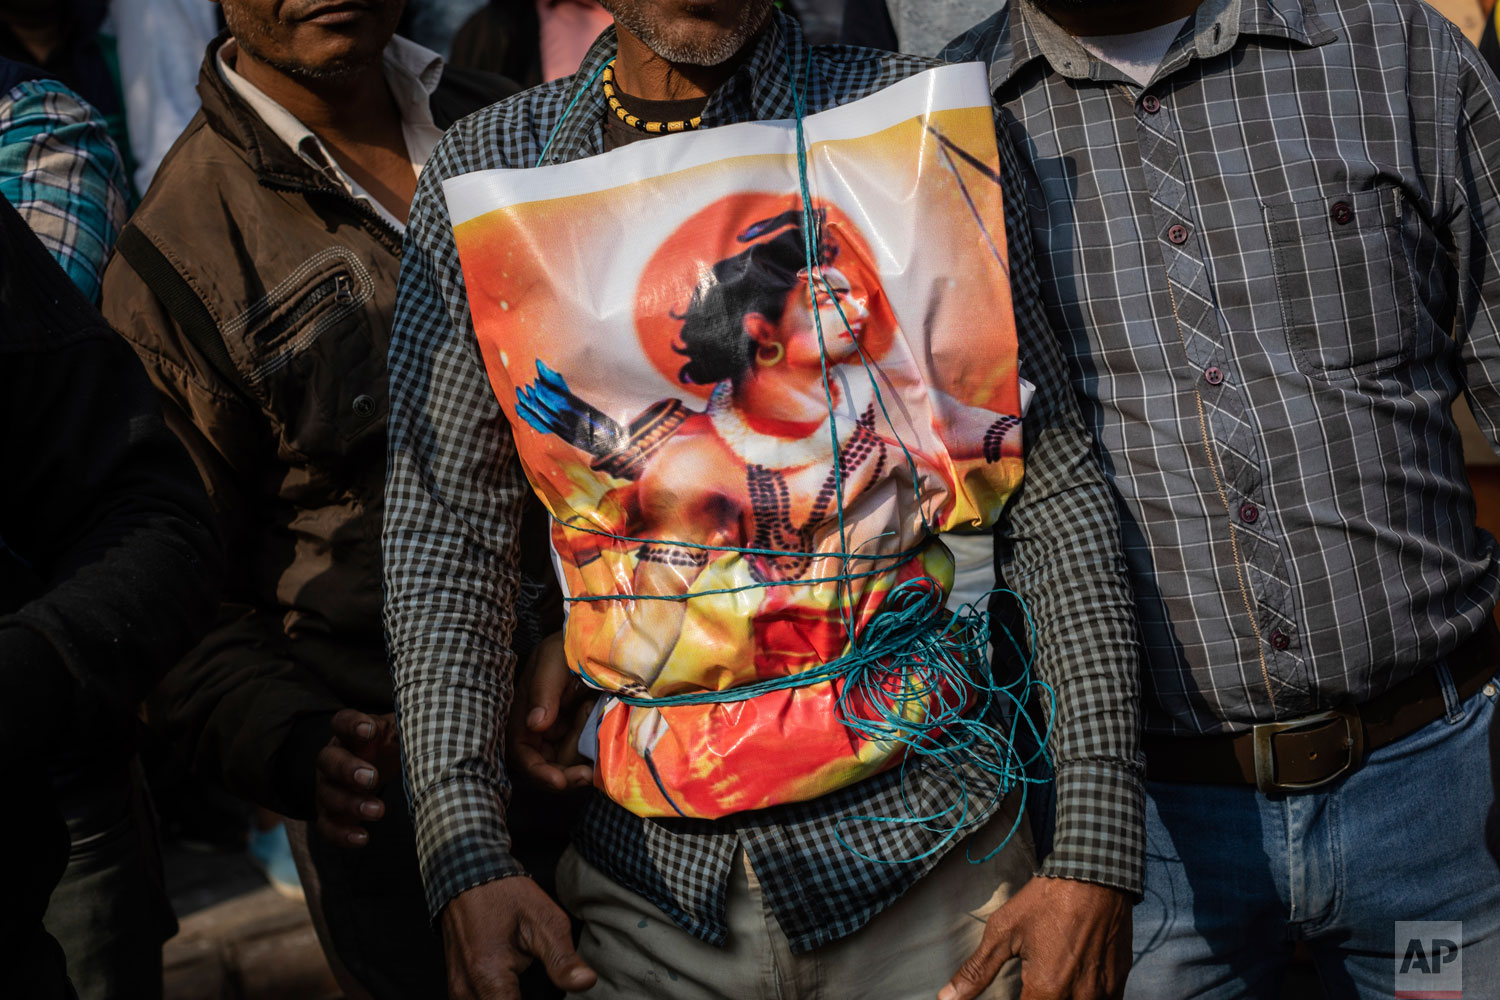 In this Sunday, Dec. 9, 2018 photo, a supporter of Hindu-extreme political group Vishwa Hindu Parishad wears a poster of the Hindu god Ram during a rally in New Delhi, India. (AP Photo/Bernat Armangue)